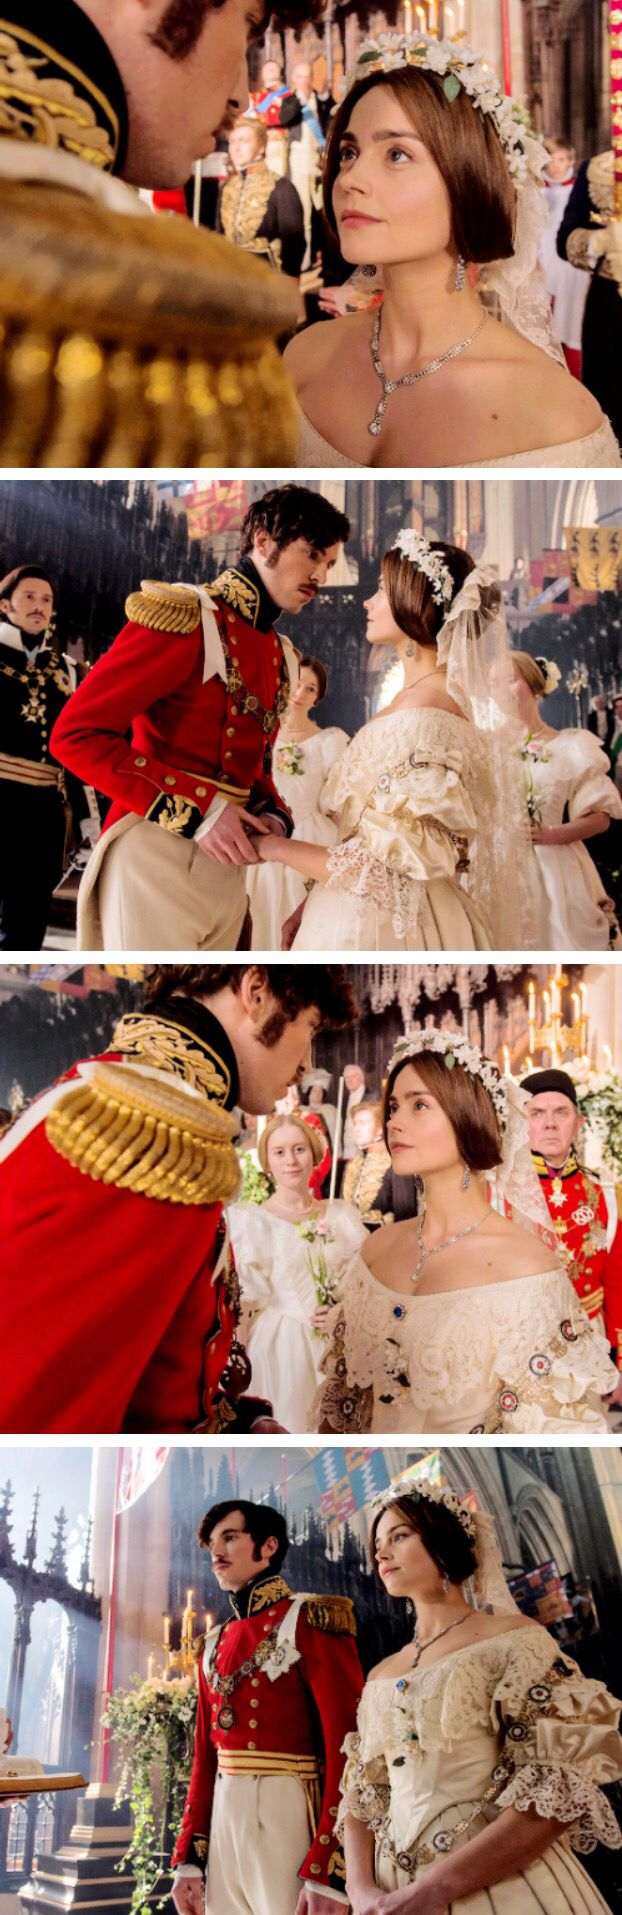 ITV's Victoria- Victoria and Albert's wedding - Jenna Coleman and Tom Hughes